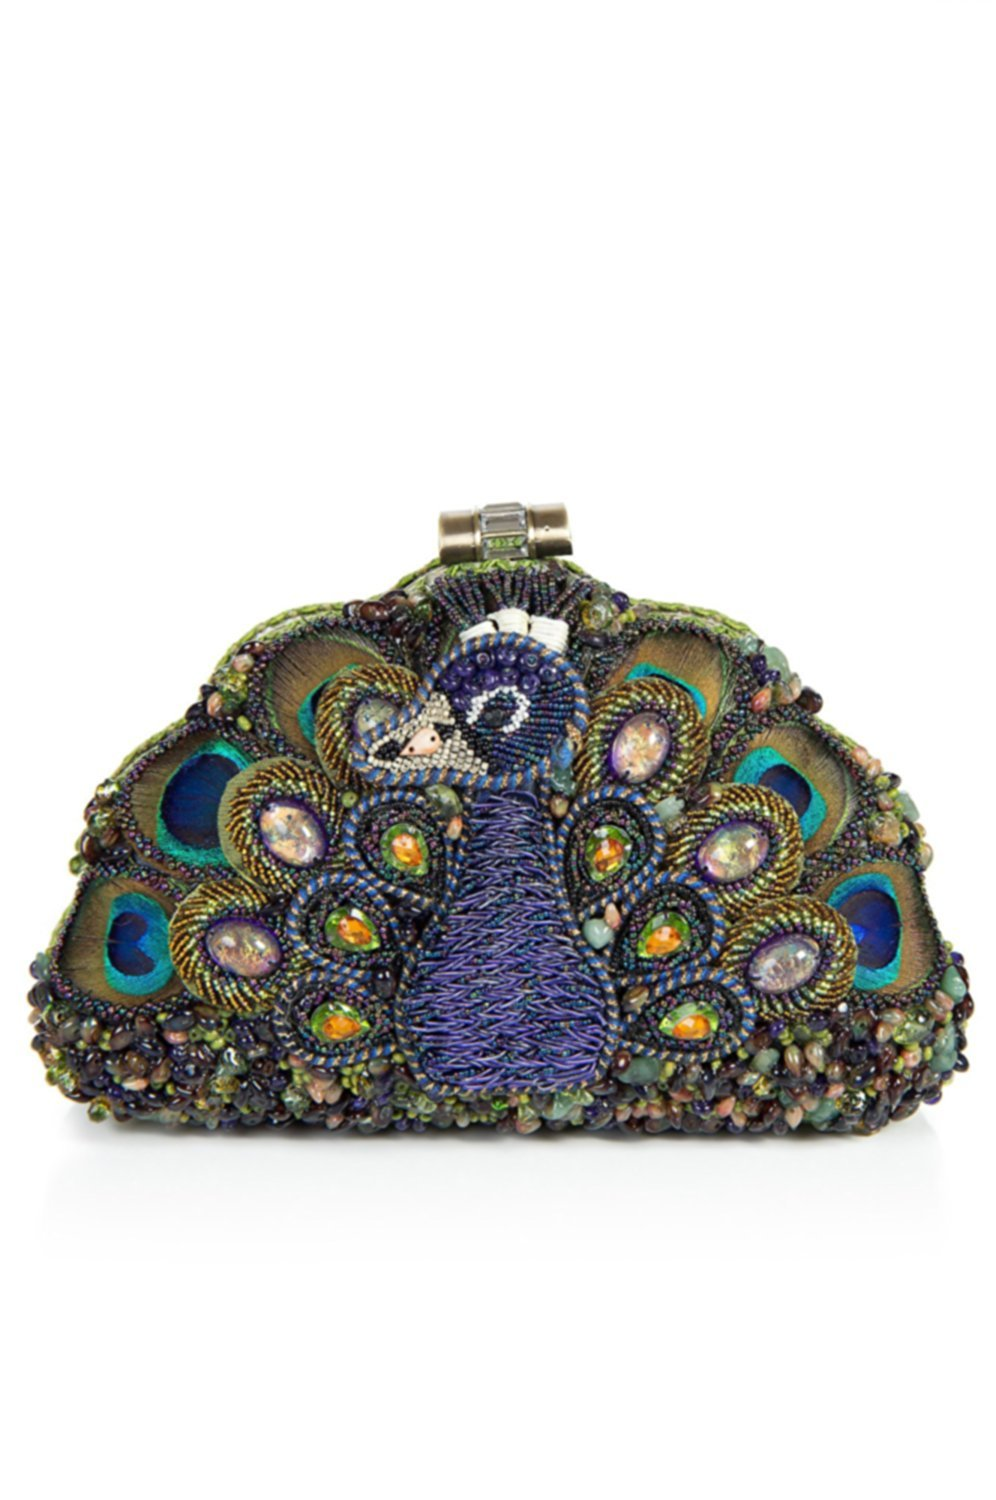 Mary Frances Show Off Beaded Crystal Jeweled Peacock Bird Handbag Shoulder Bag